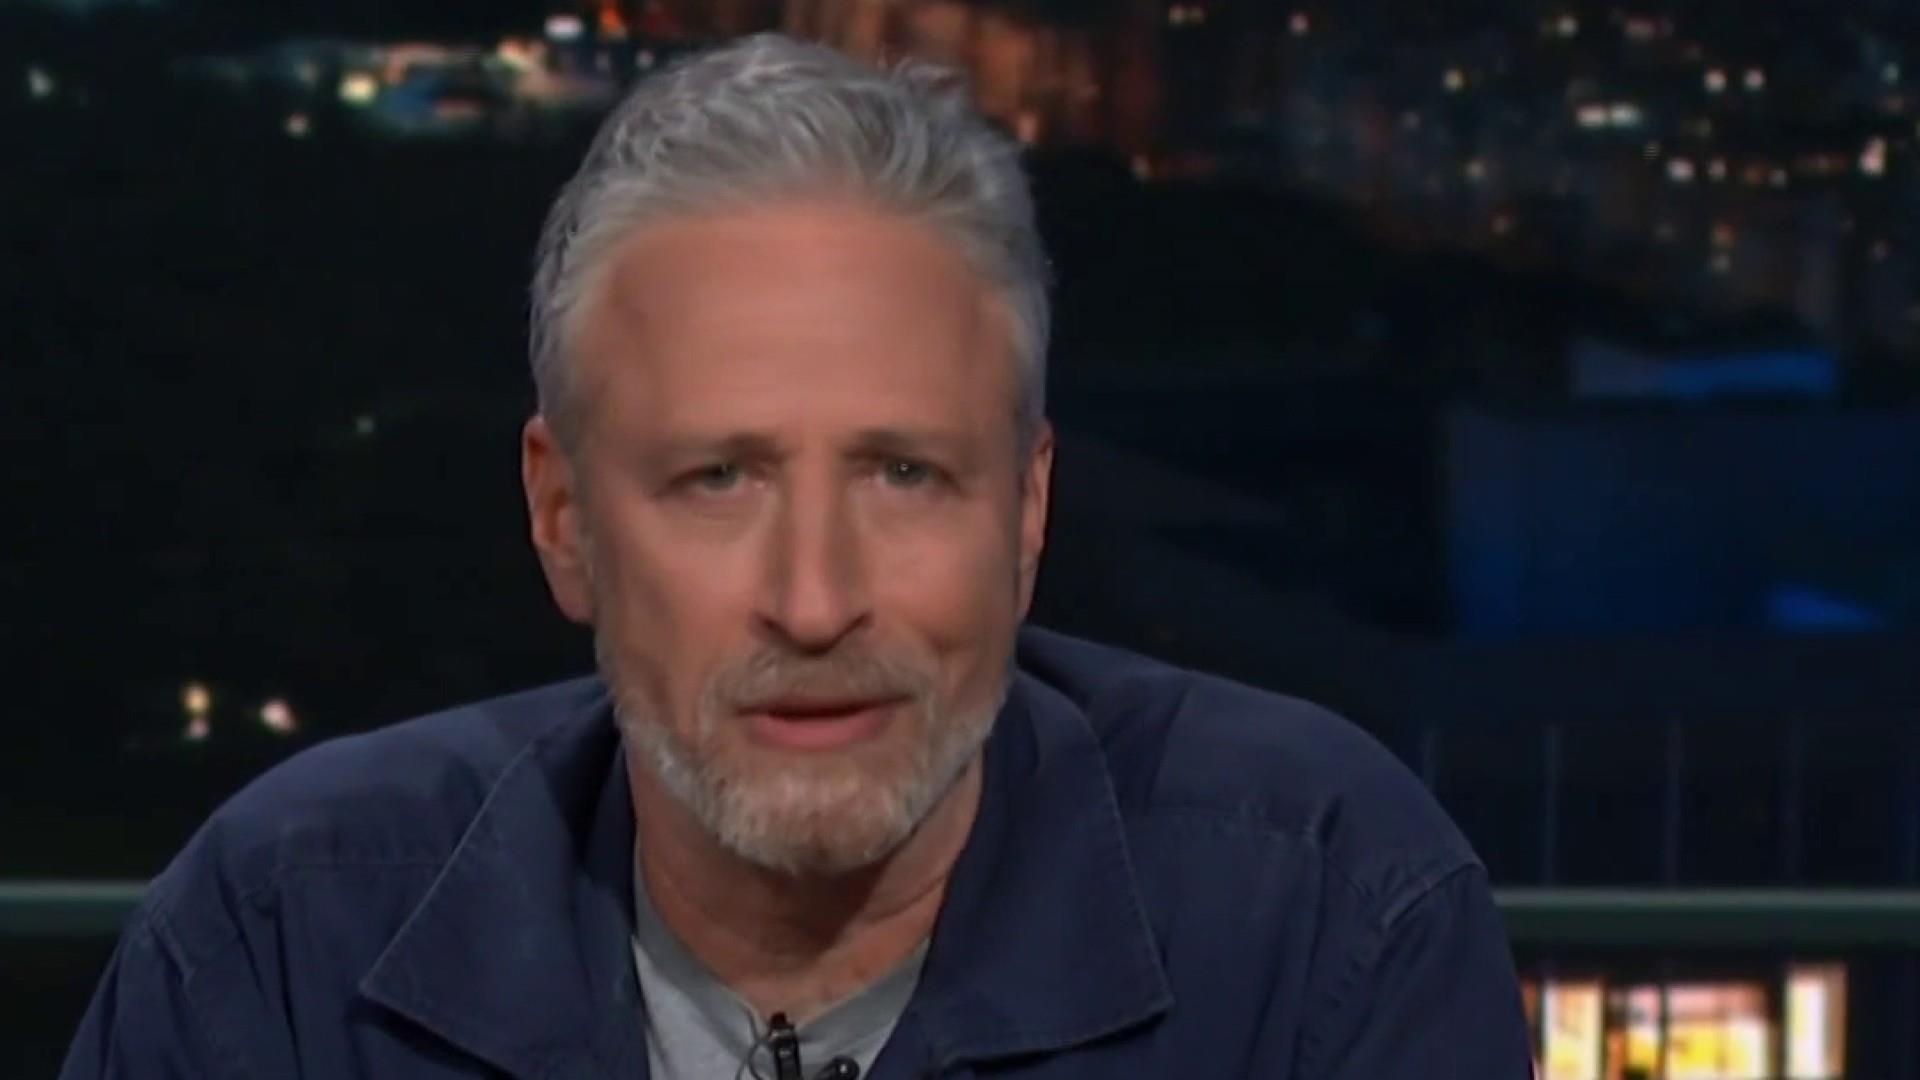 Jon Stewart and Mitch McConnell spar over funding for 9/11 first responders